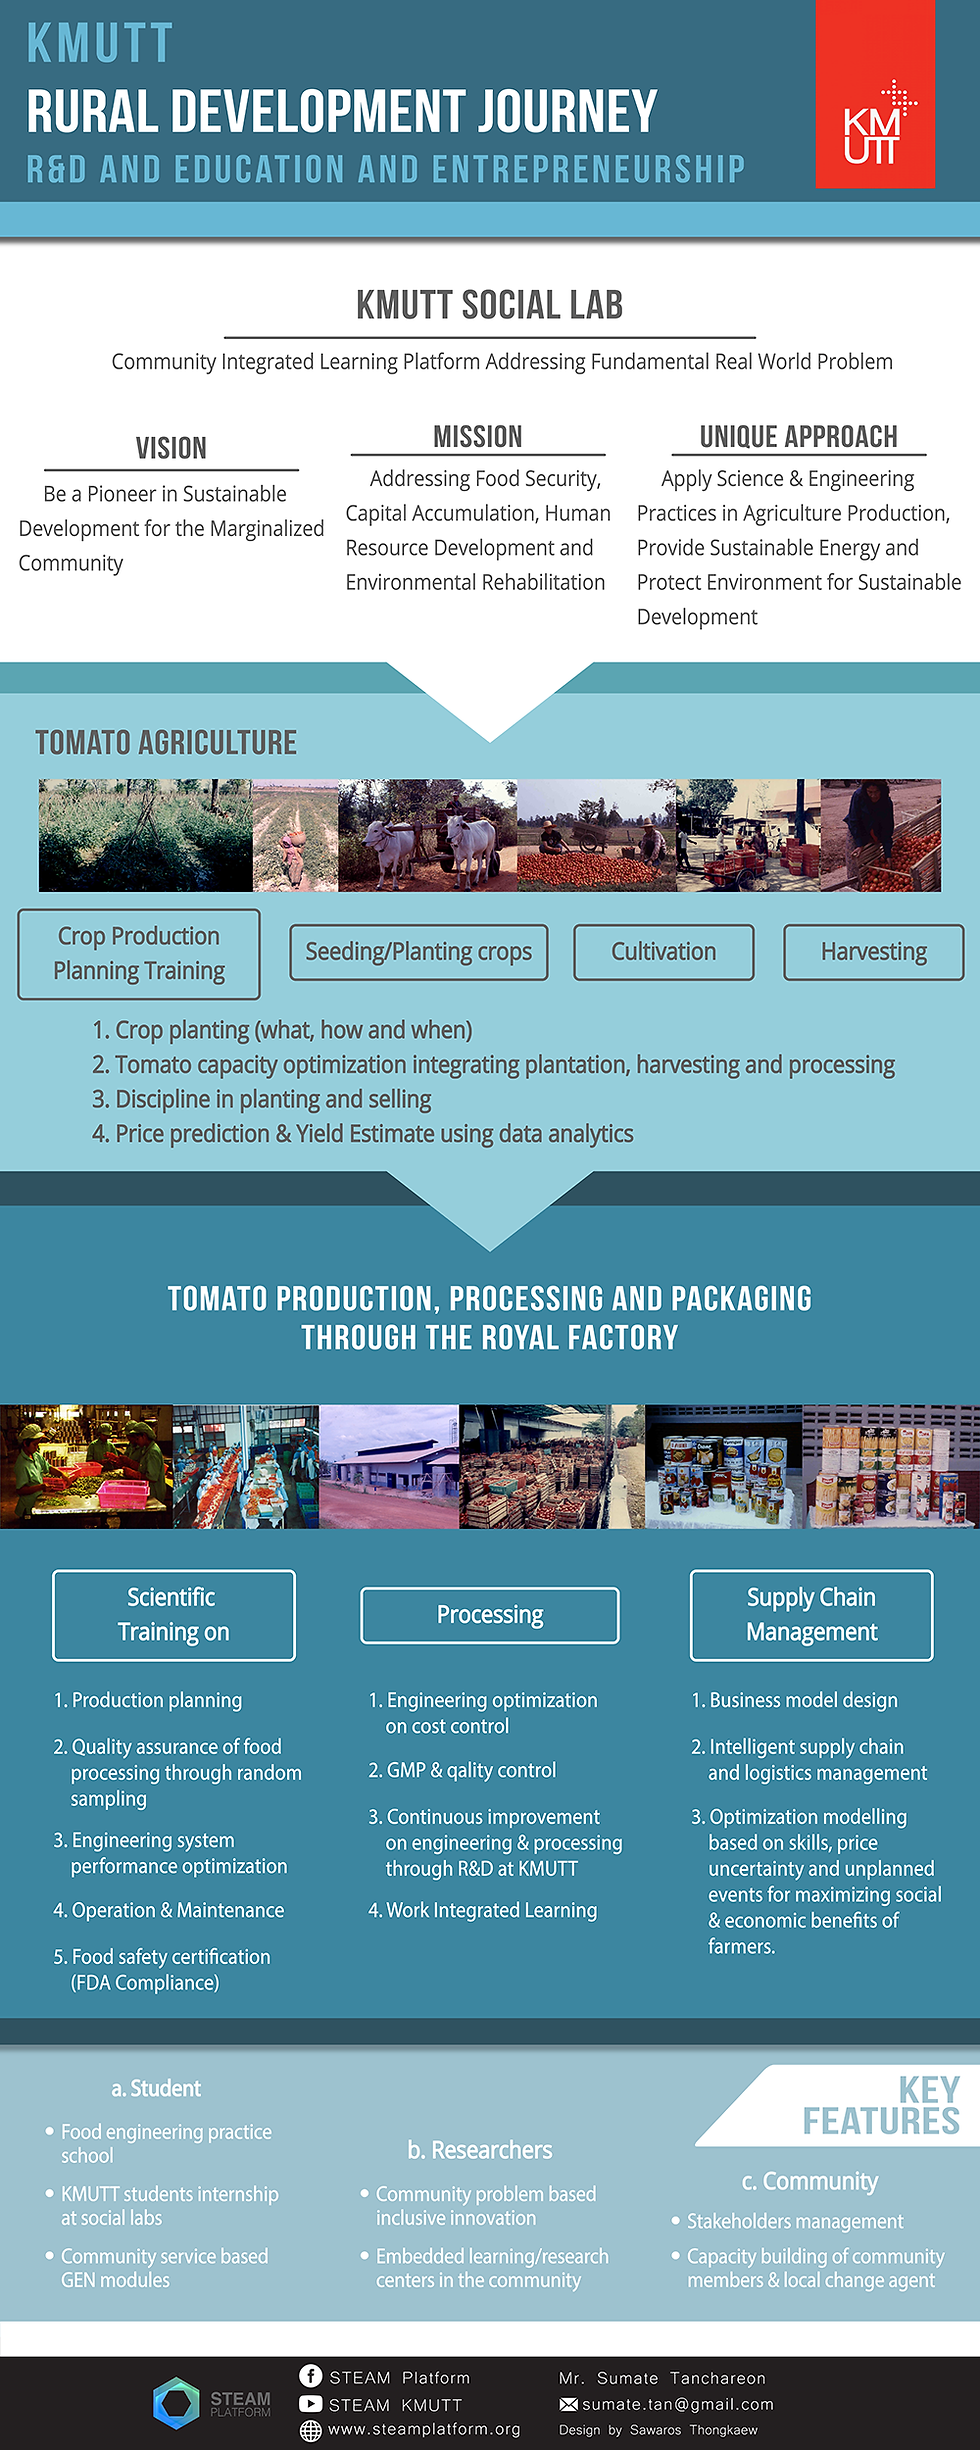 KMUTT Rural Development Journey